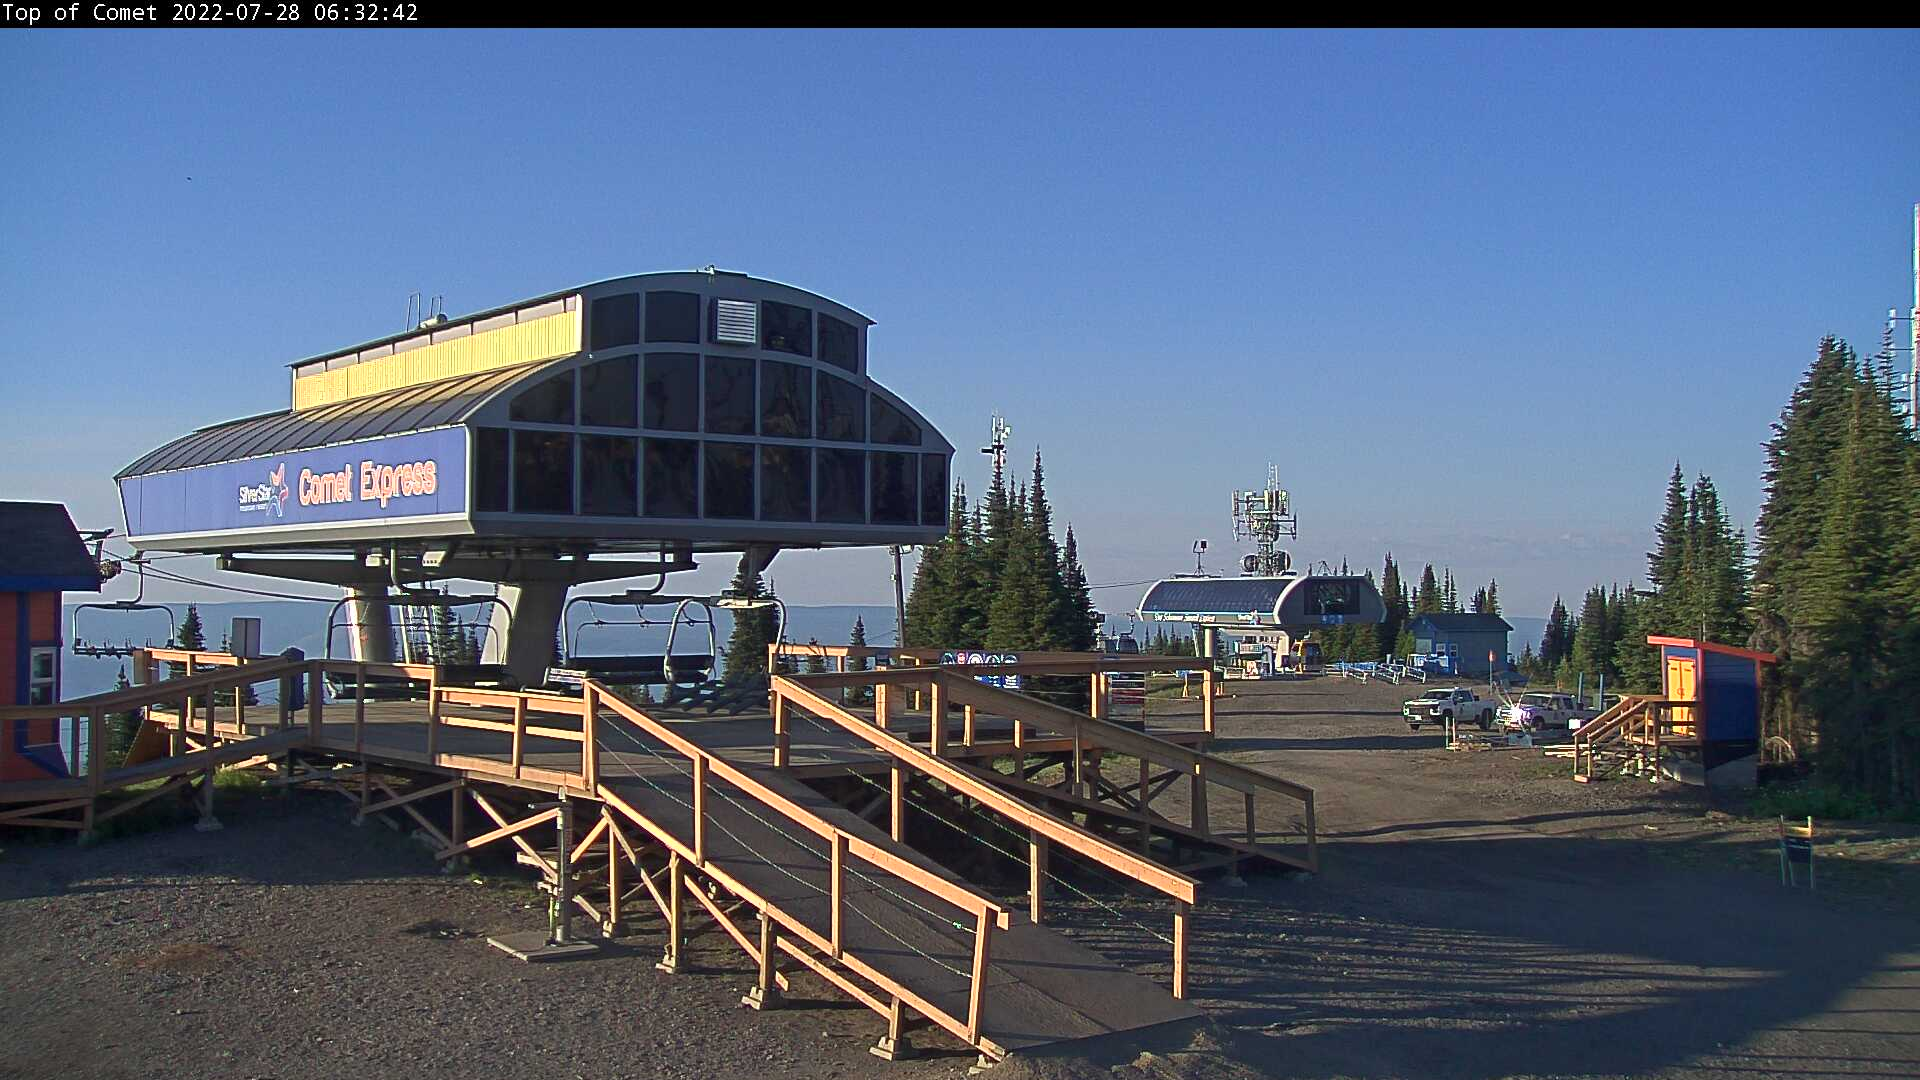 SilverStar Comet Webcam